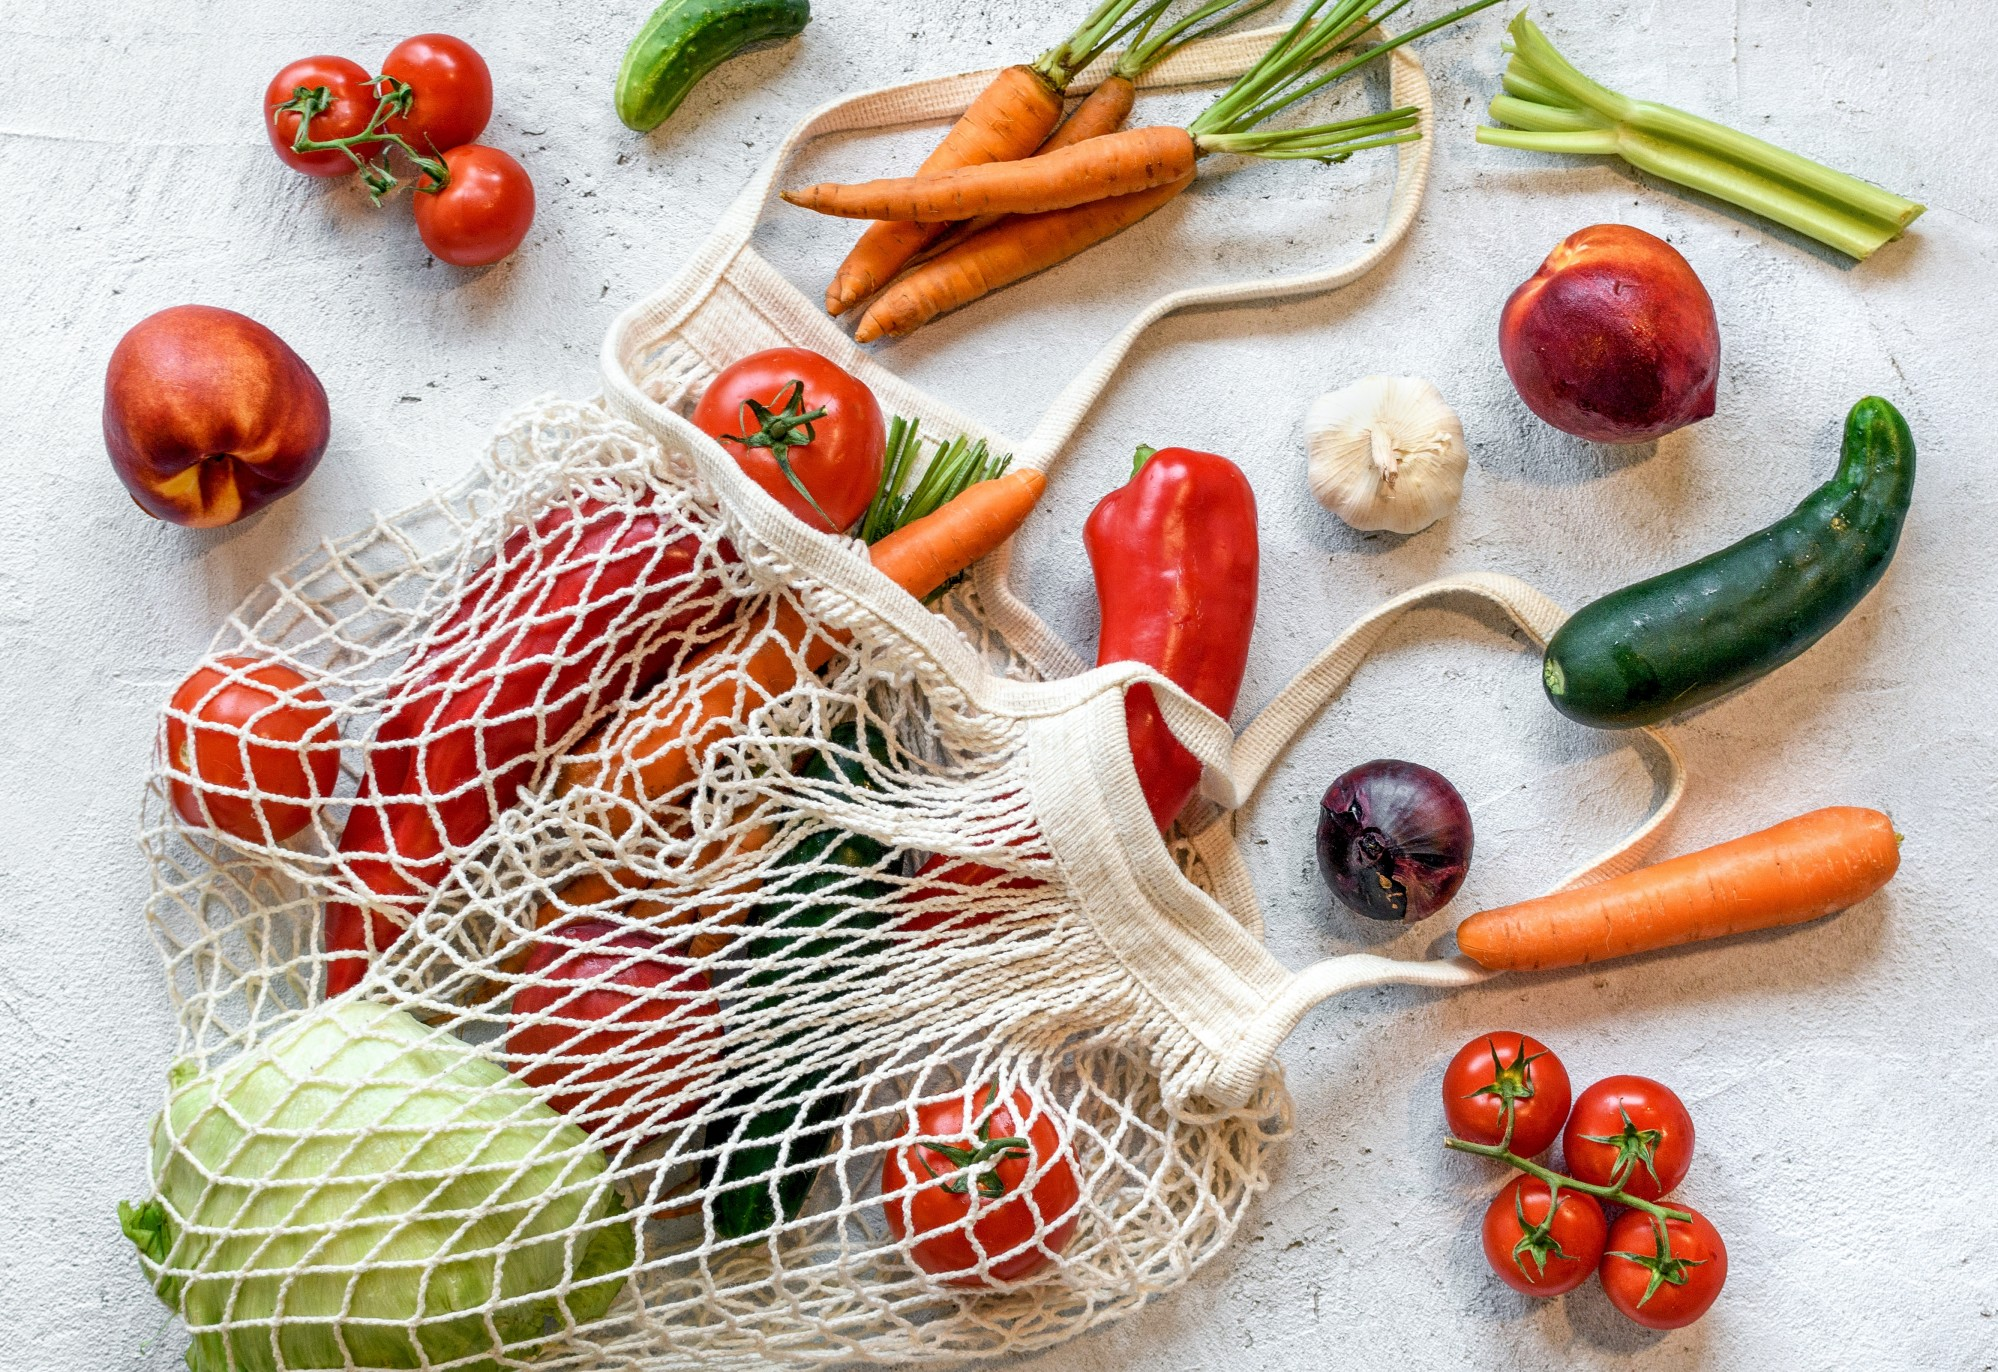 You are currently viewing Fruit and Vegetable Benefits for You